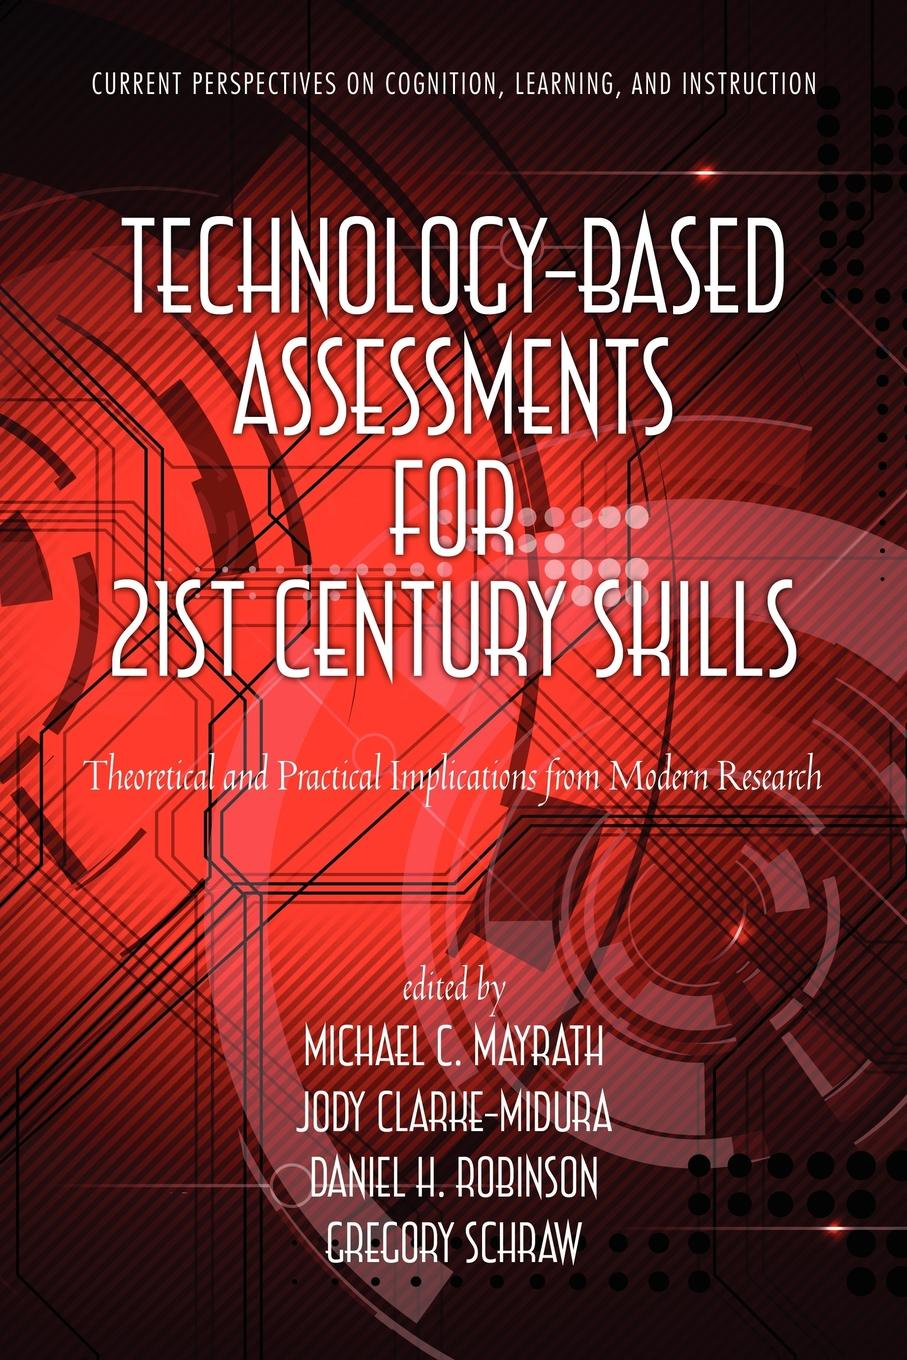 Technology-Based Assessments for 21st Century Skills. Theoretical and Practical Implications from Modern Research paul wood j river science research and management for the 21st century